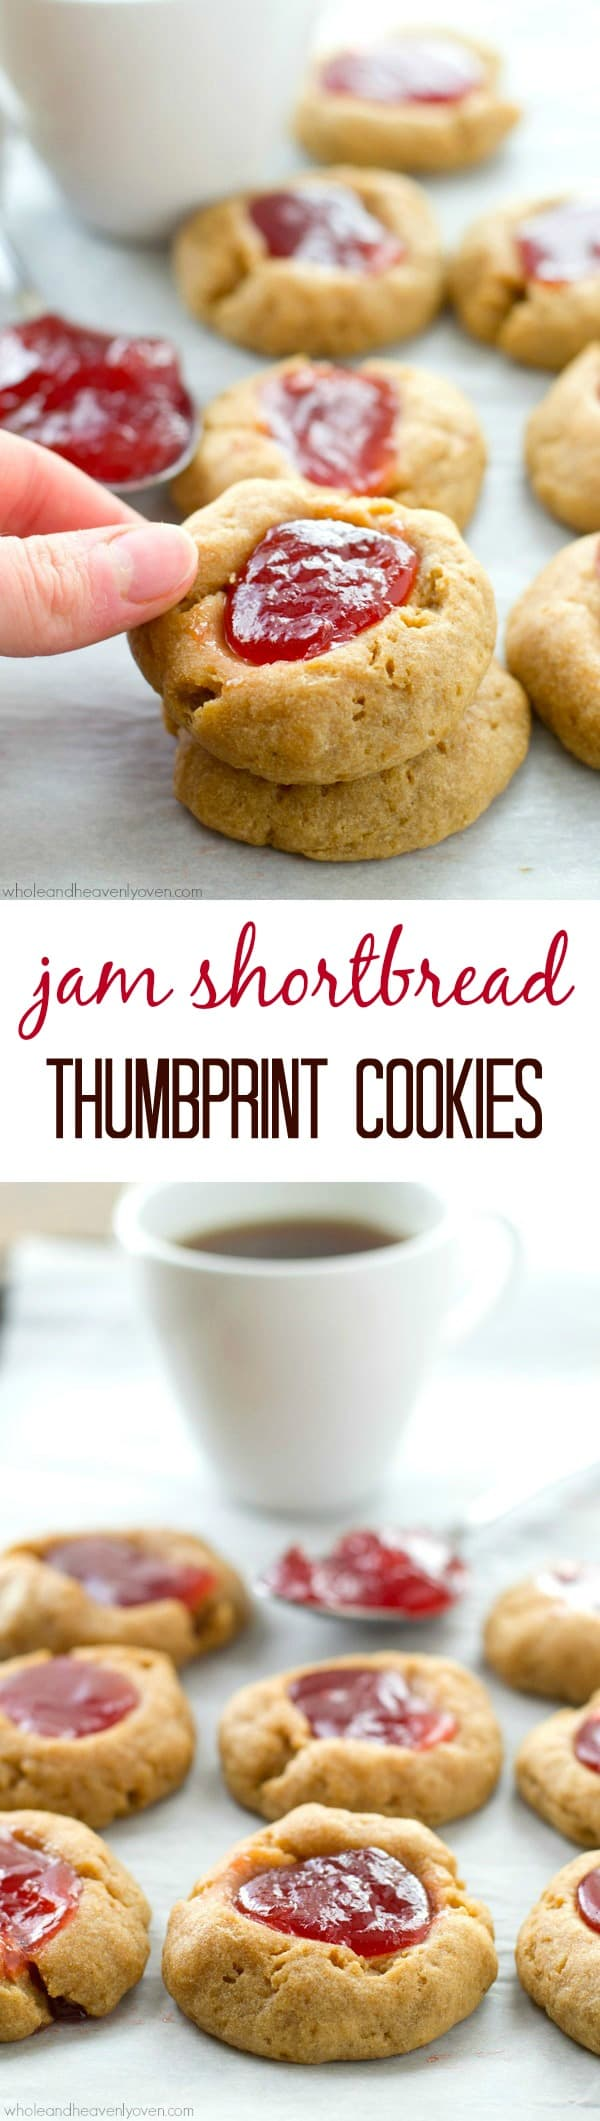 These delicate tea cookies are soft, buttery and filled with lots of fruity jam! They're well-received at any kind of springtime gathering. @WholeHeavenly